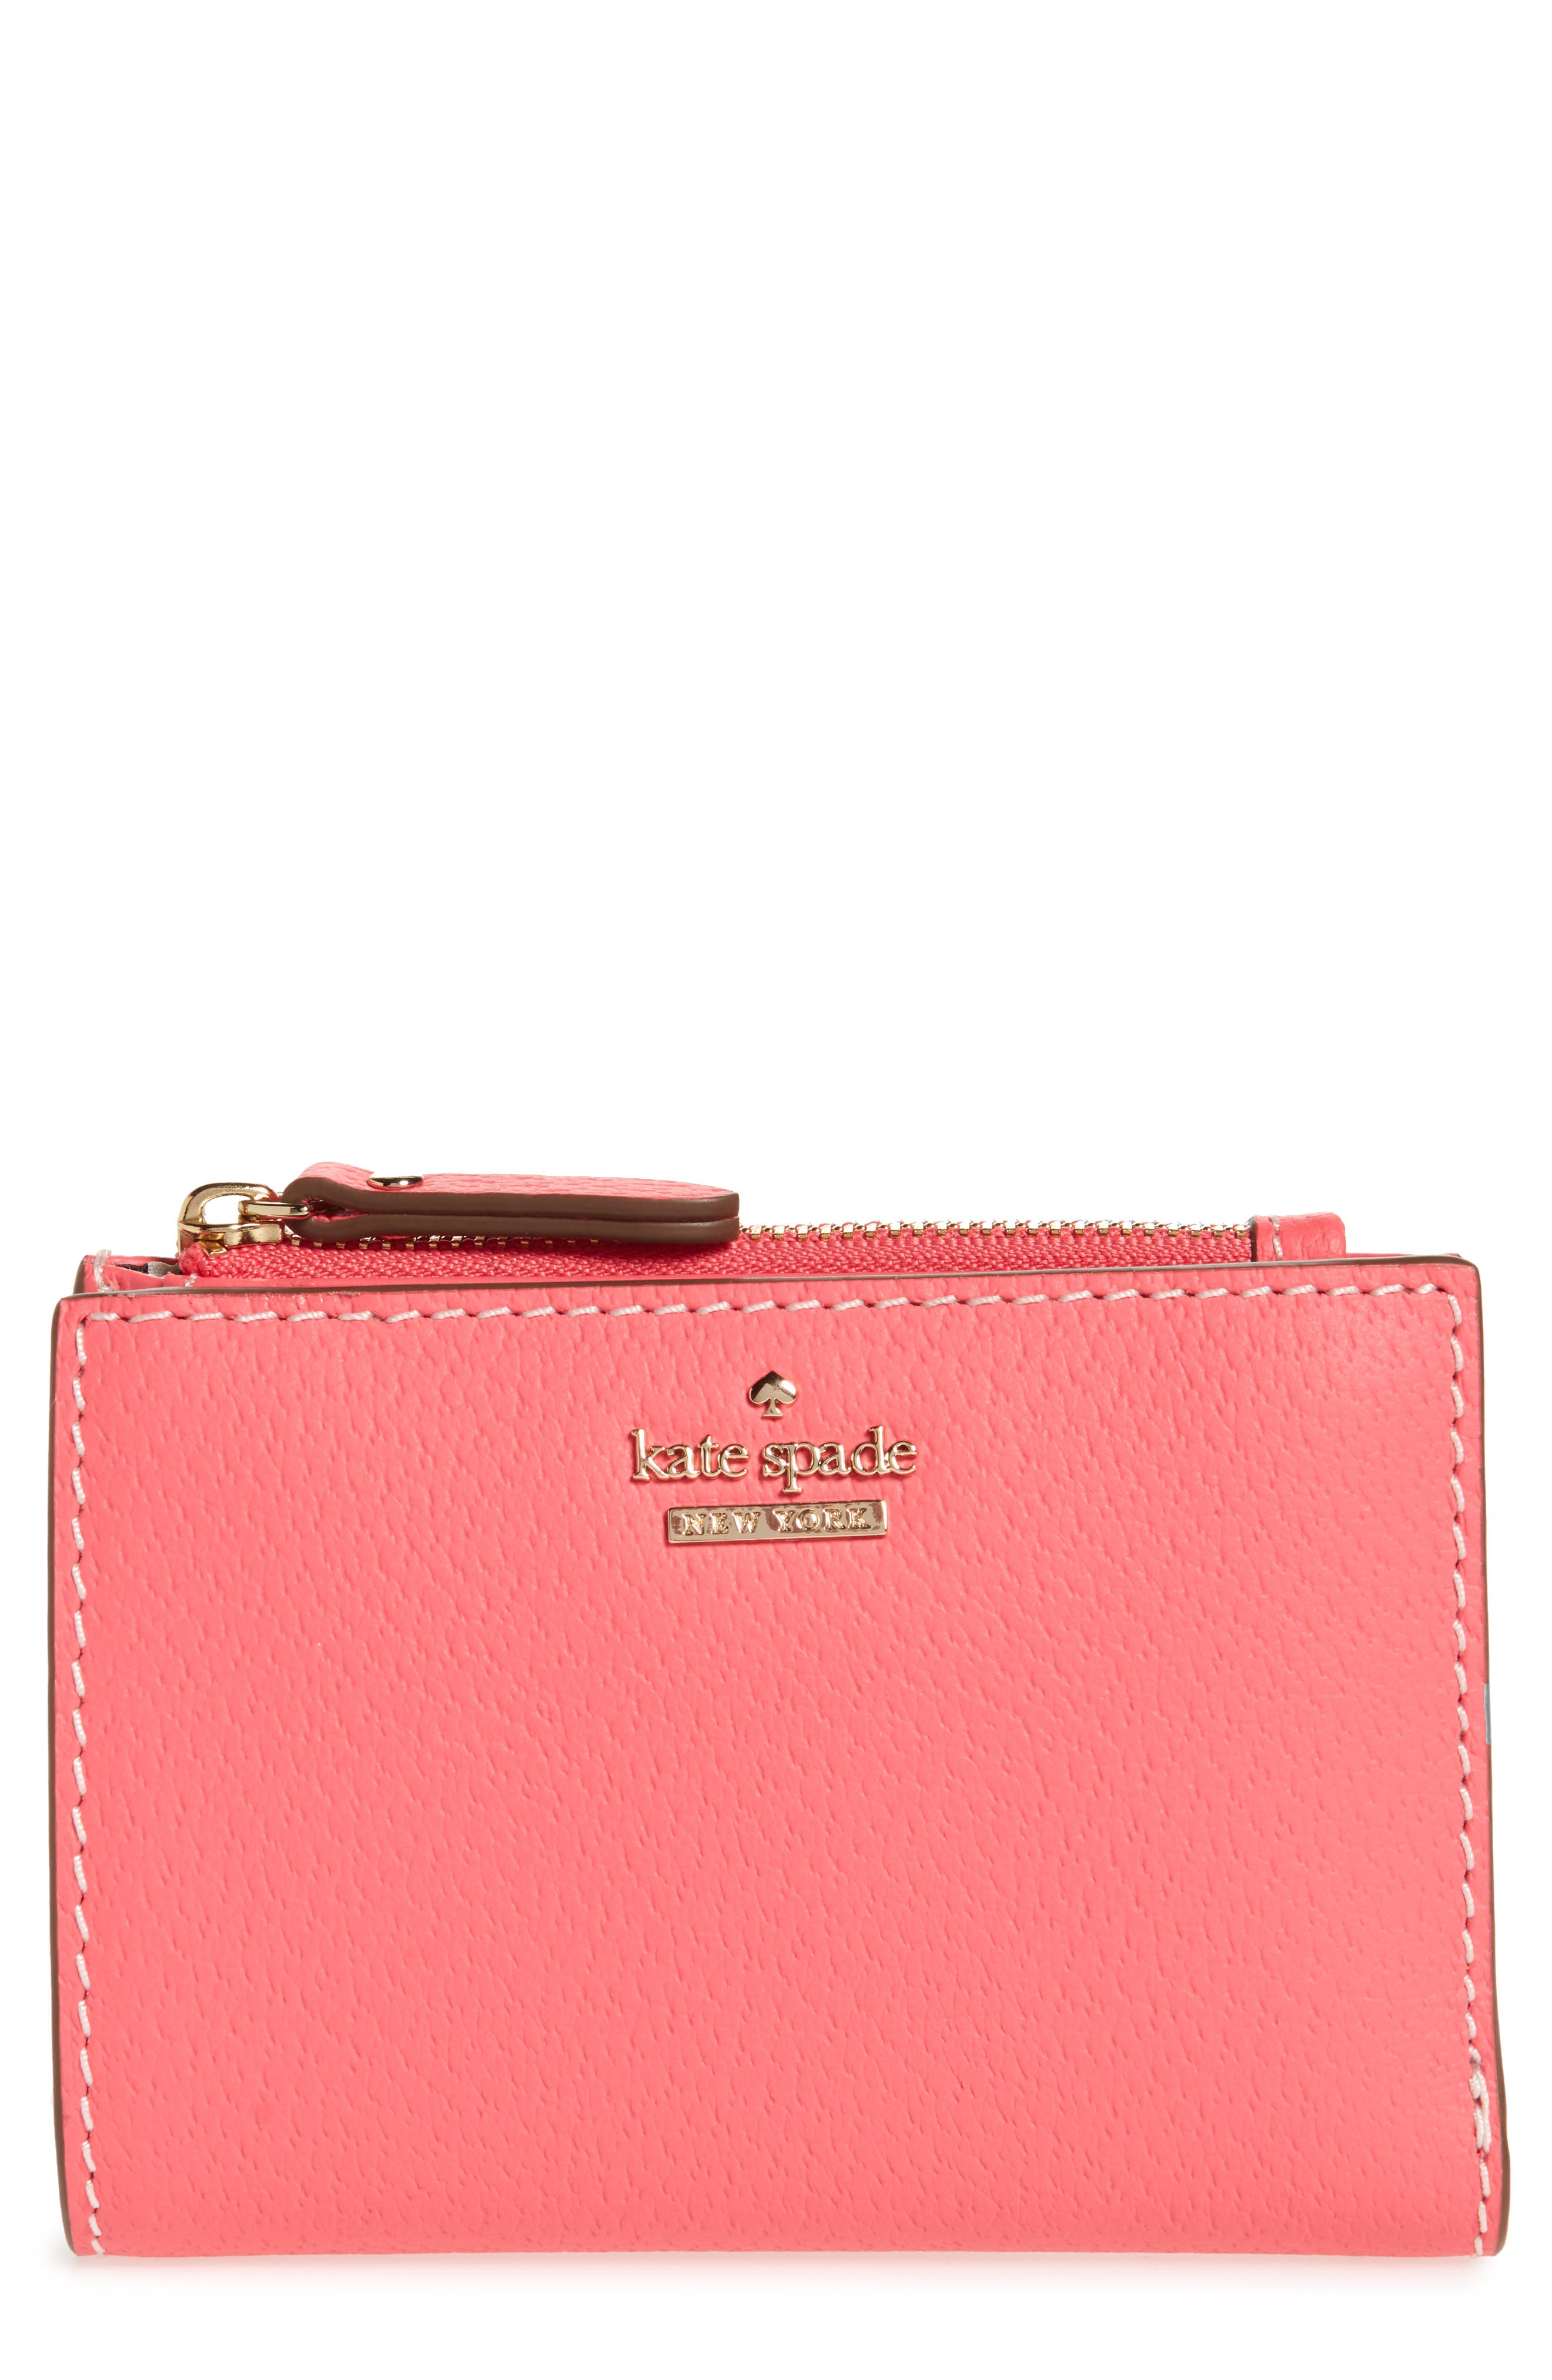 thompson street – abri leather wallet,                         Main,                         color, Bright Flamingo